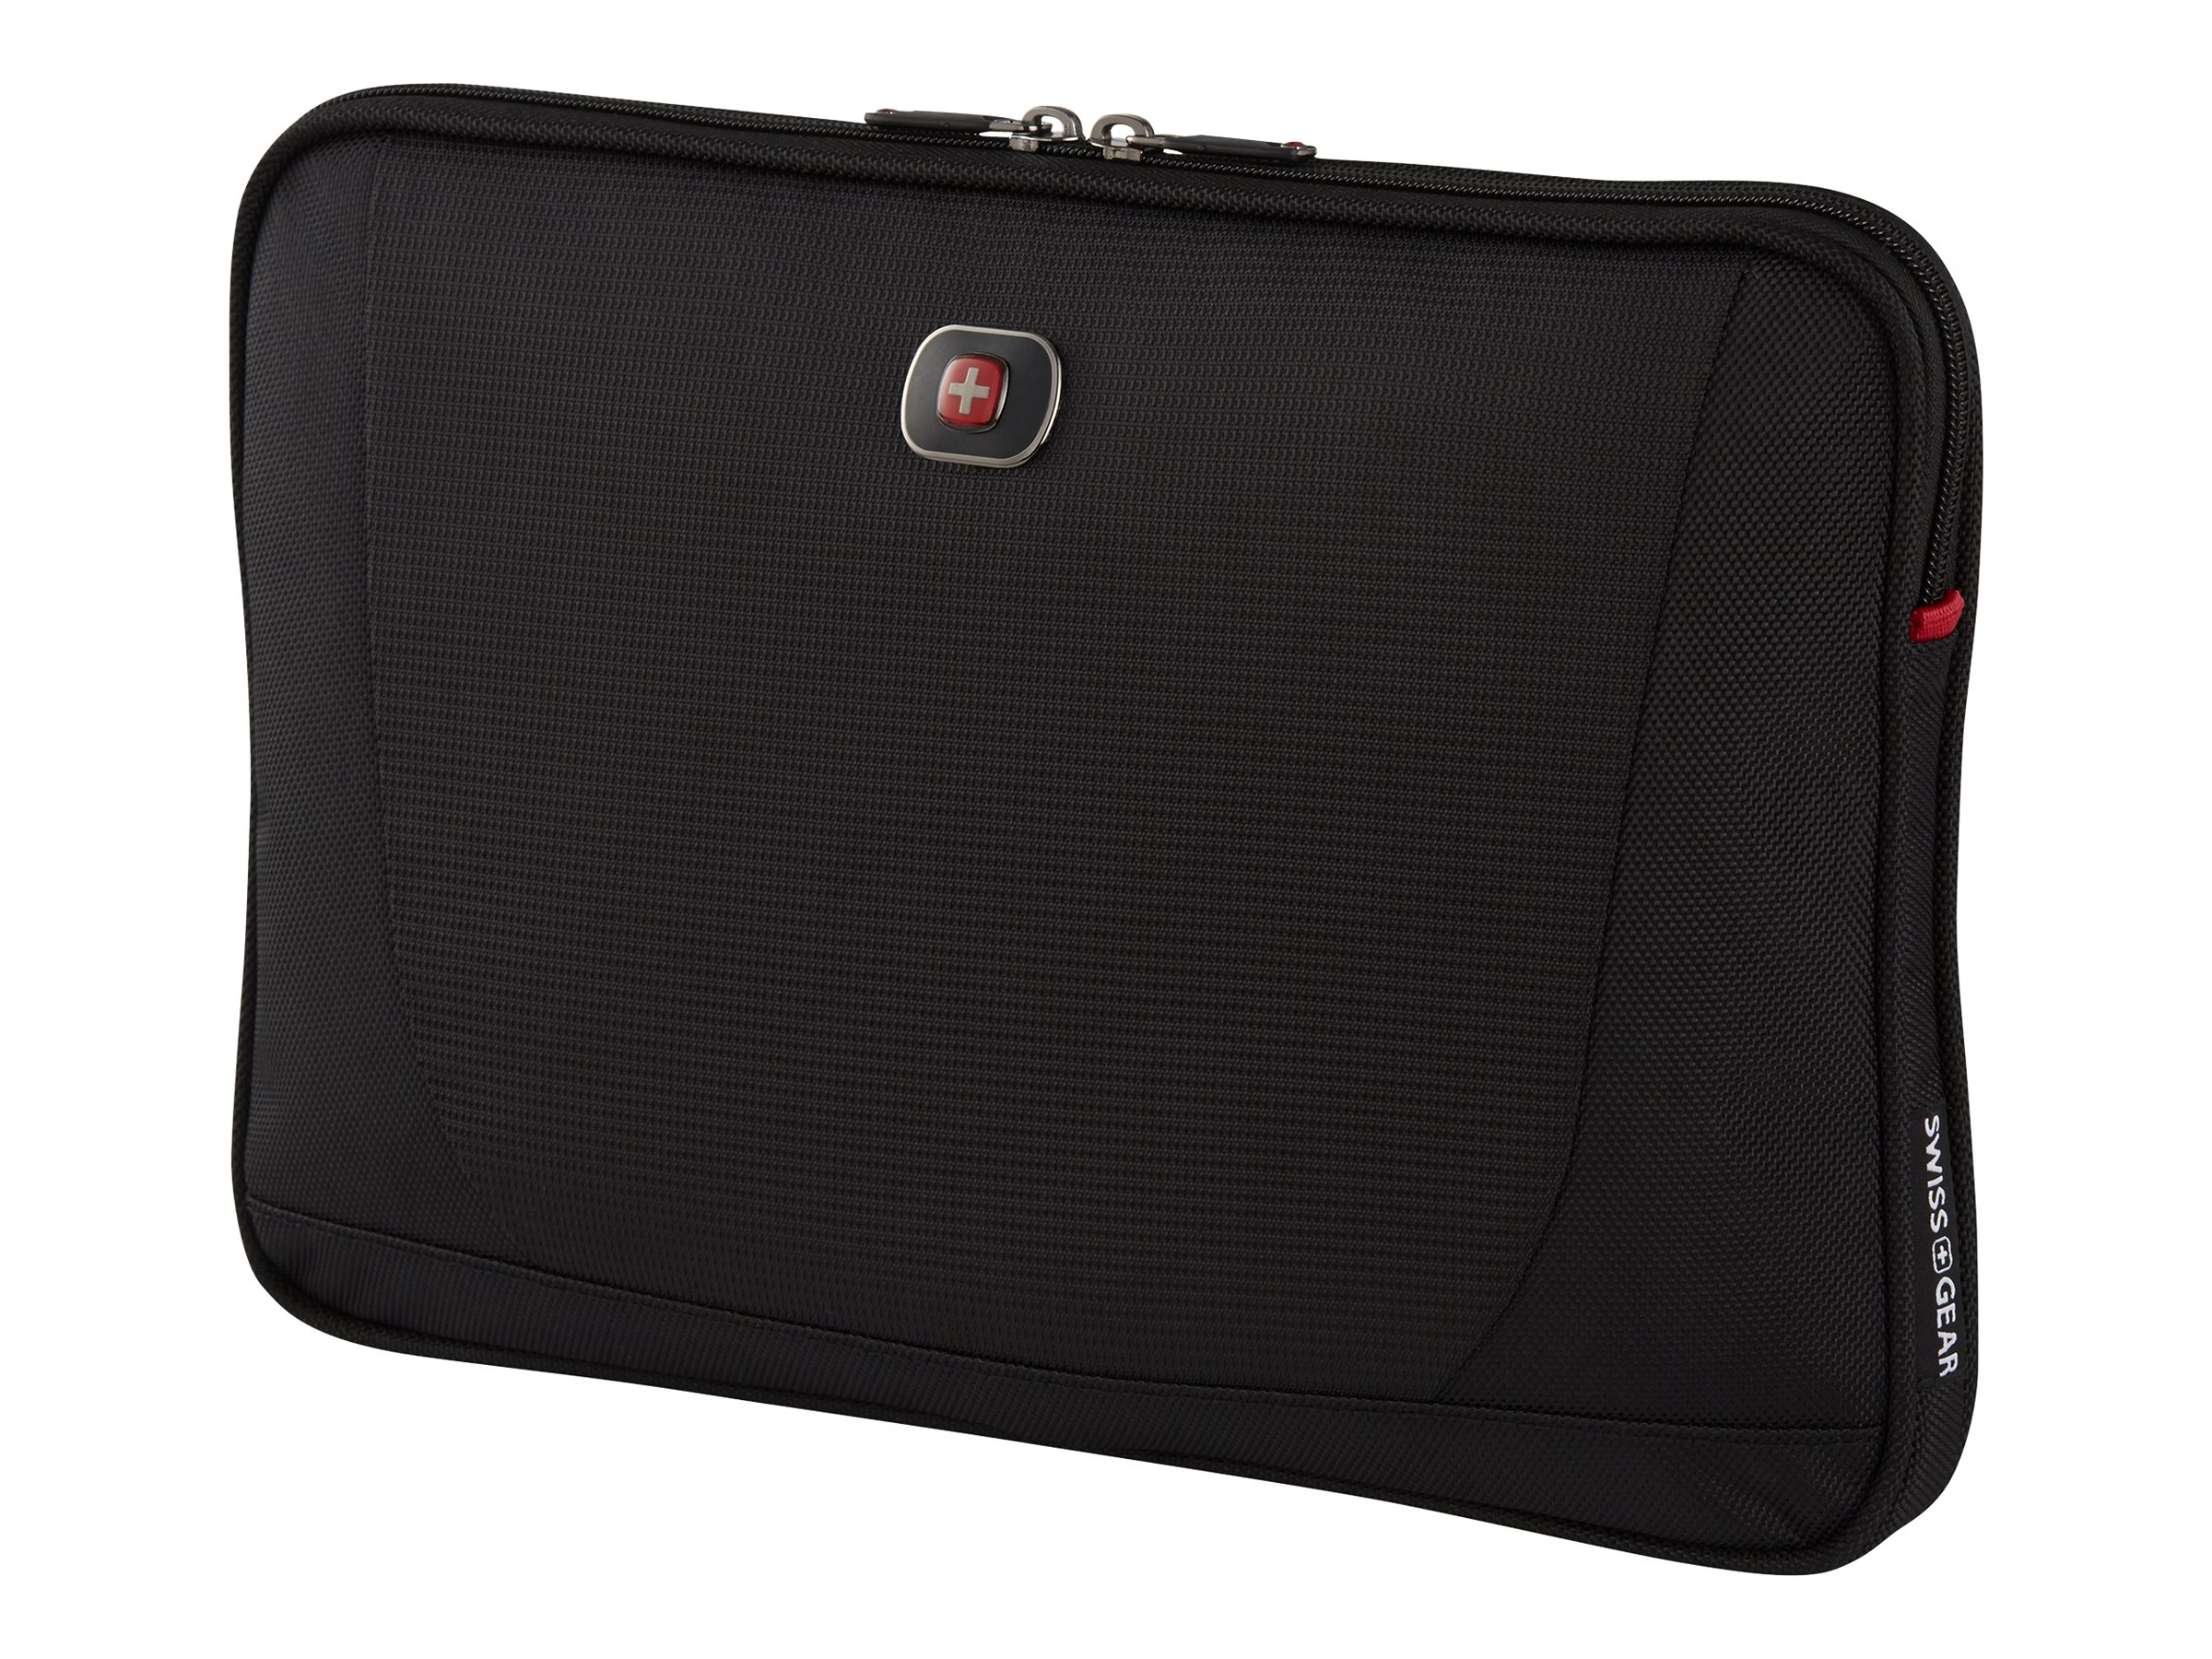 Wenger SwissGear Beta 14 Laptop Sleeve 14 Laptop, Black, 28061010